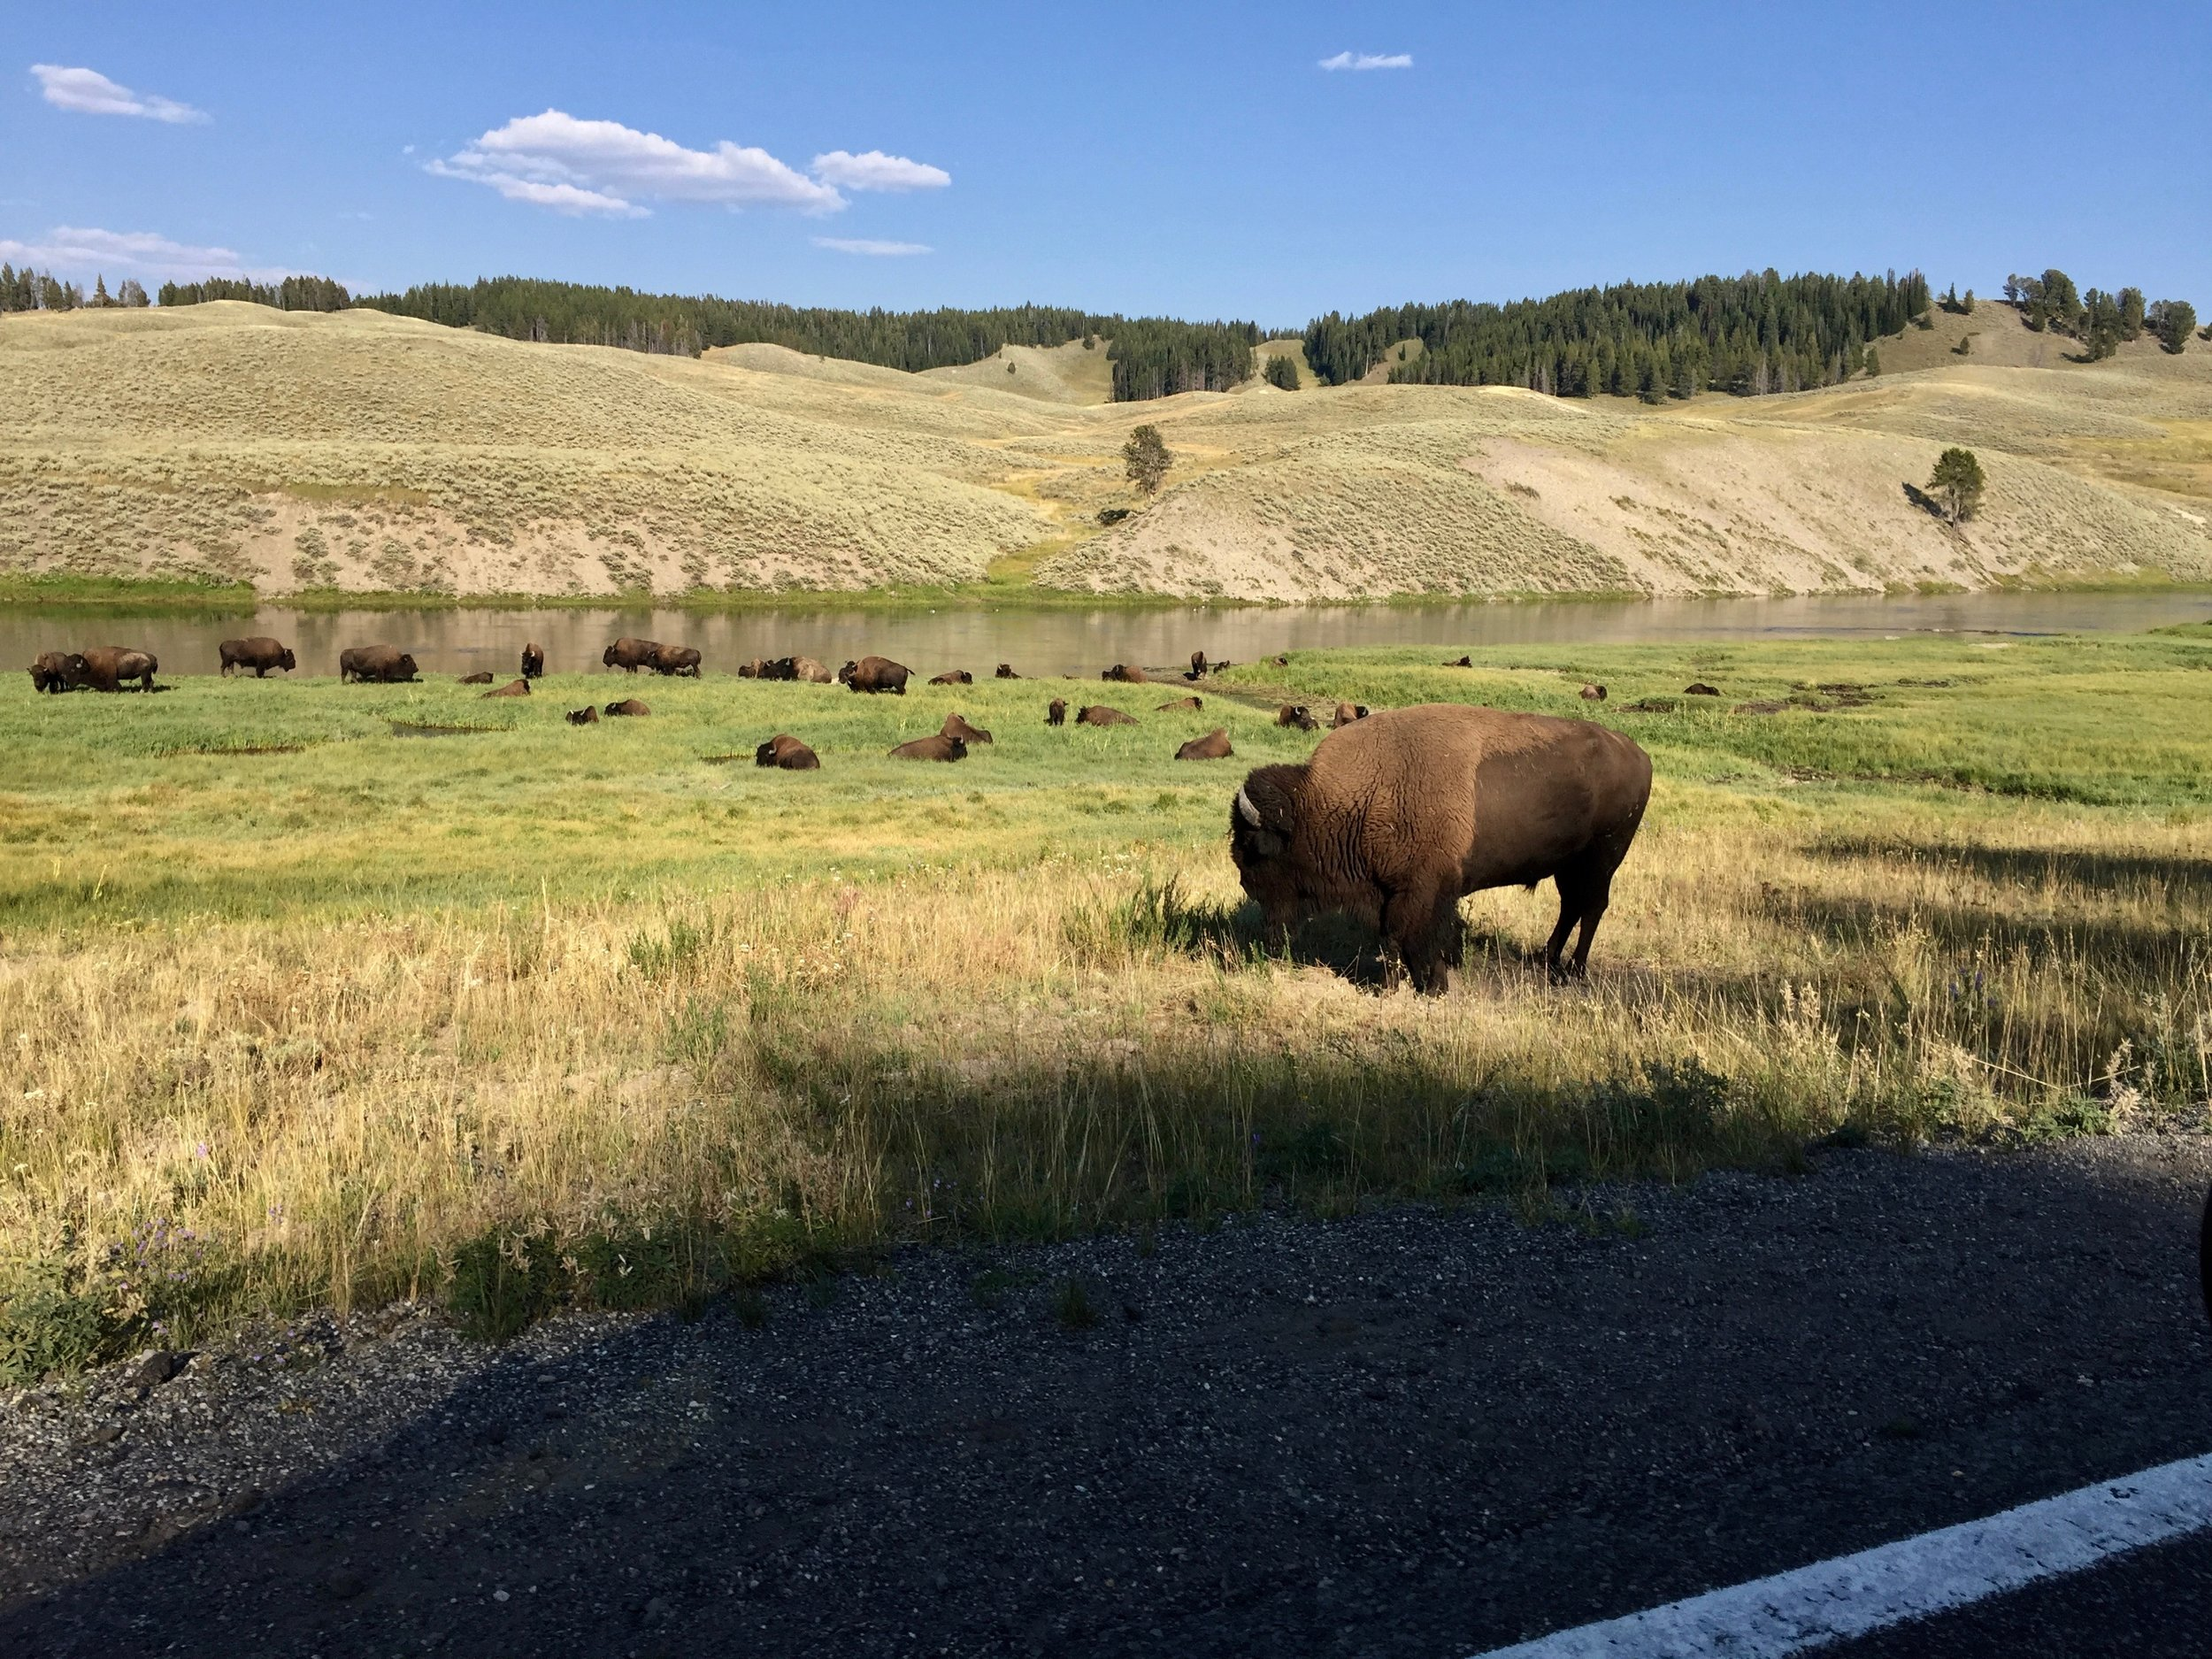 Visiting Yellowstone. The wildlife hangs out right on the side of the road!